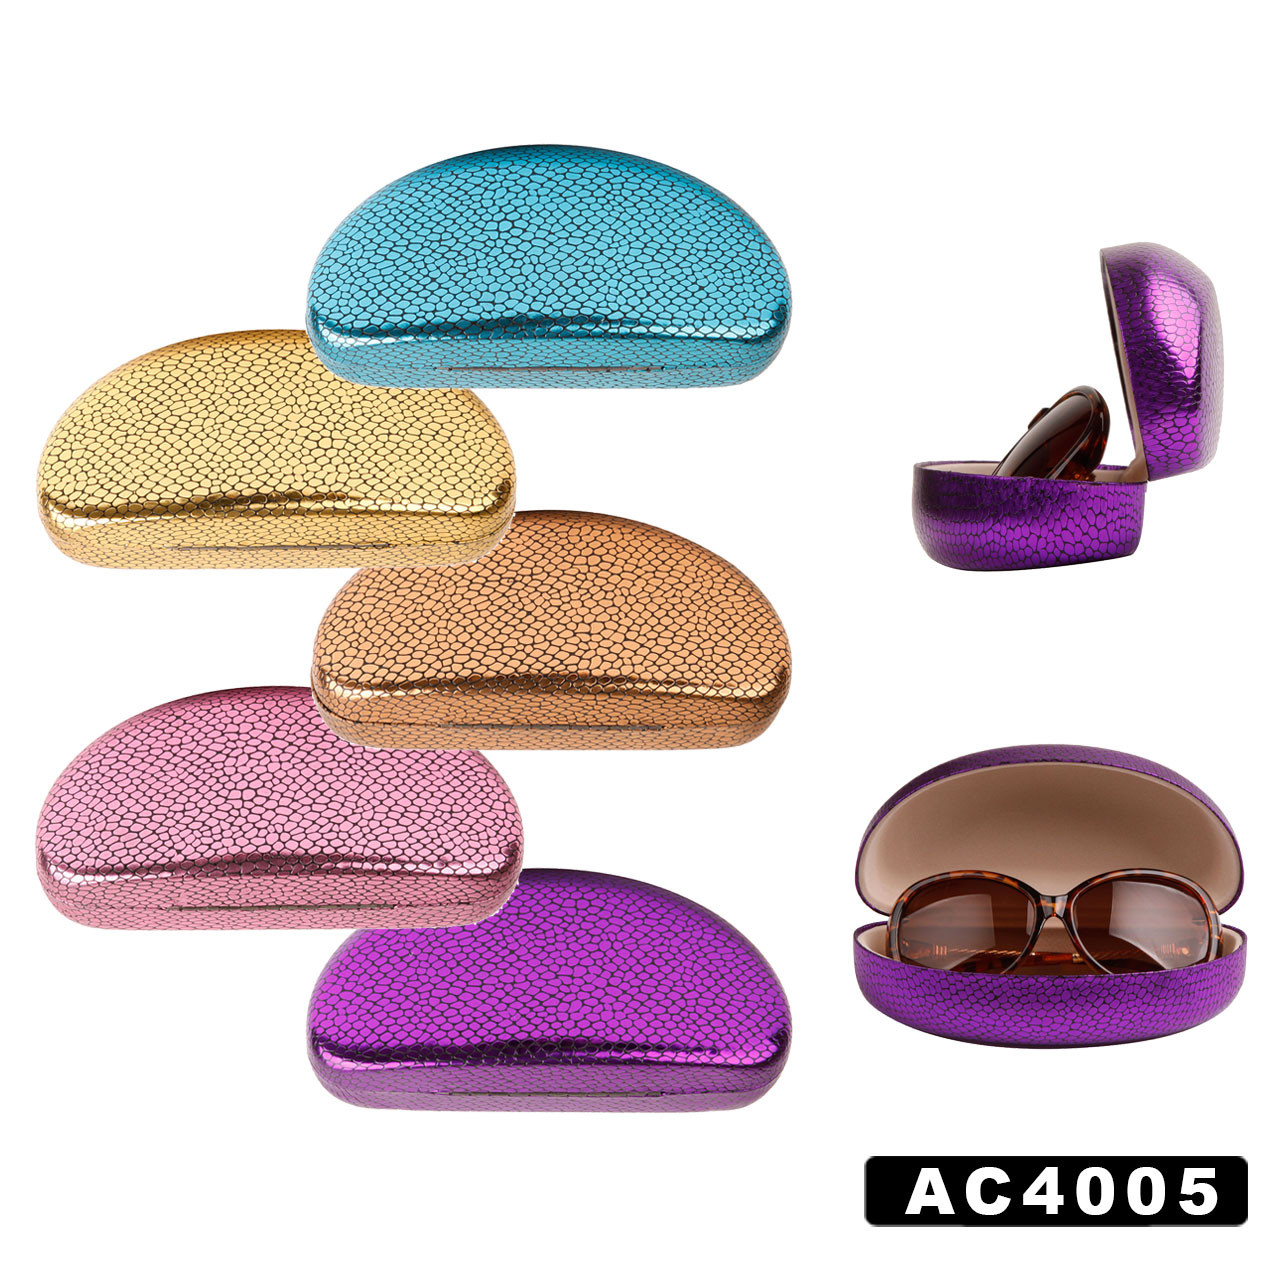 Sunglass Hard Cases Wholesale - AC4005